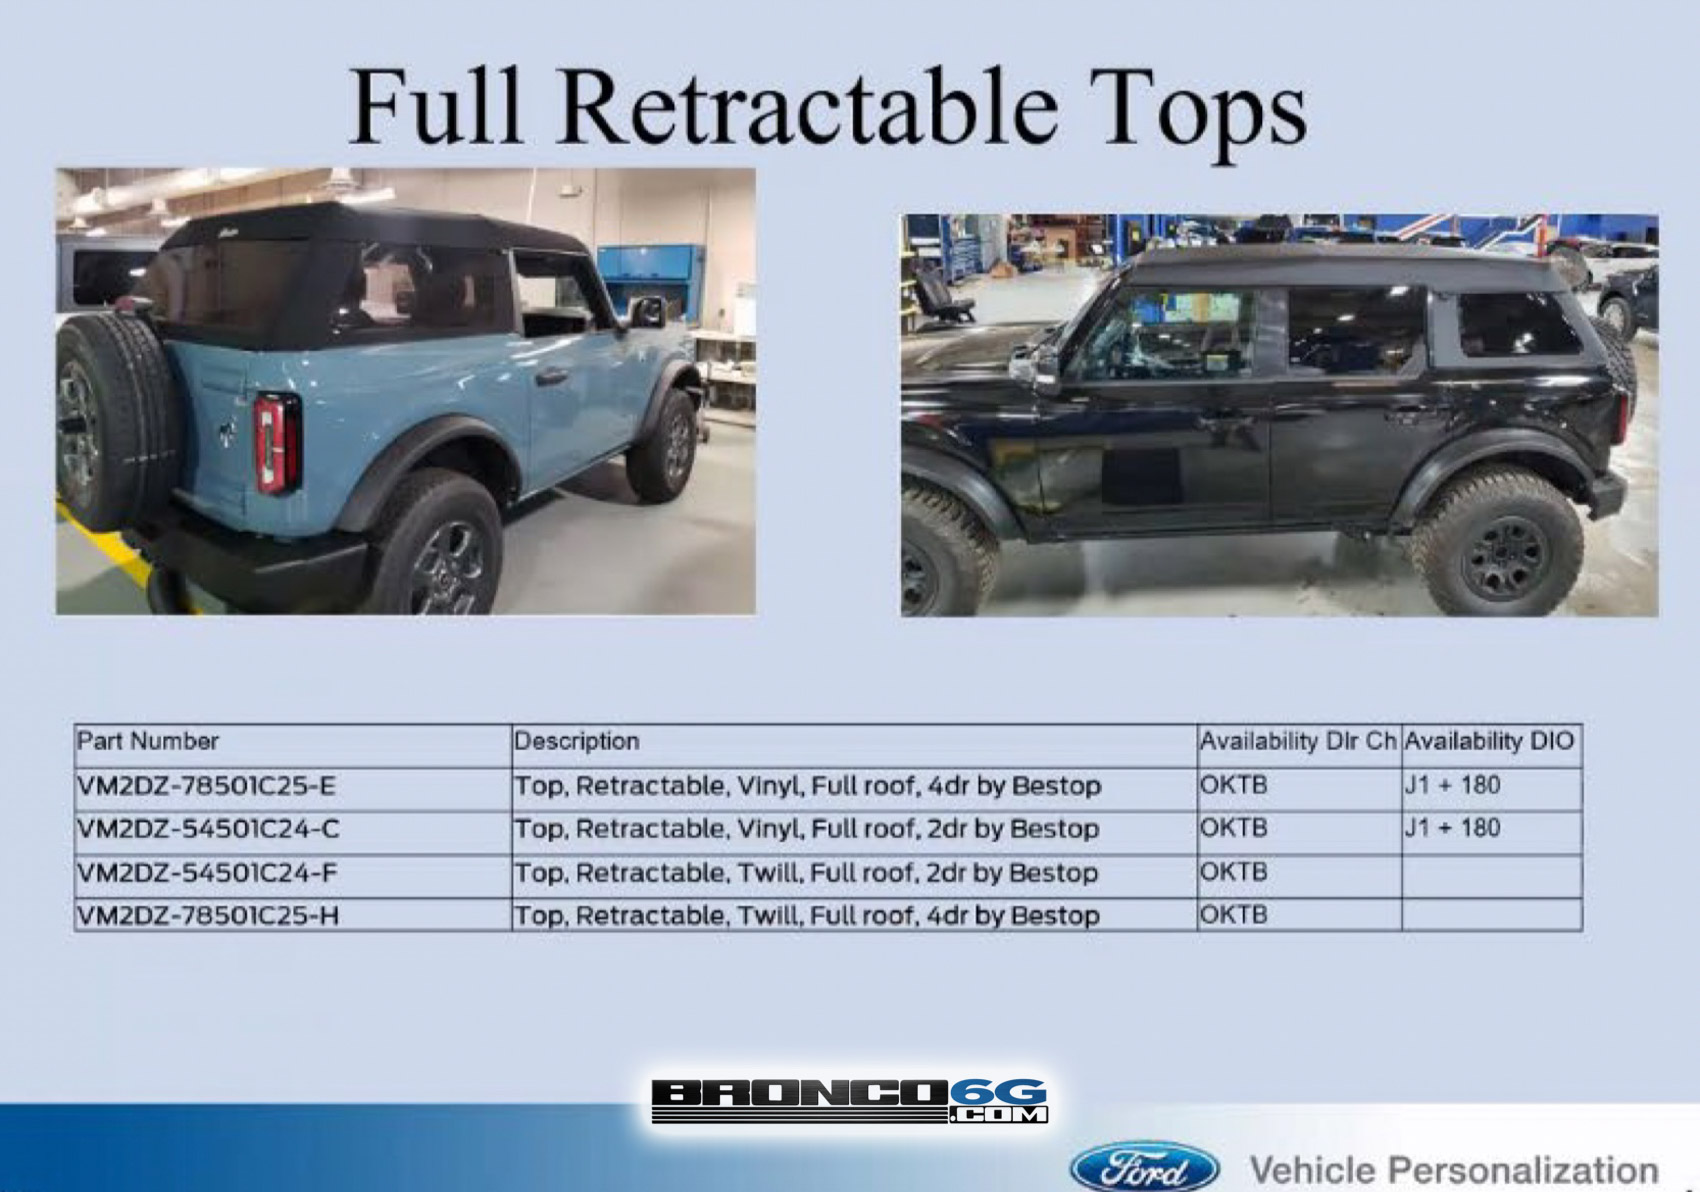 2021 Bronco Full Retractable Tops Fastback Soft Top - Ford Performance OEM factory accessory.jpg